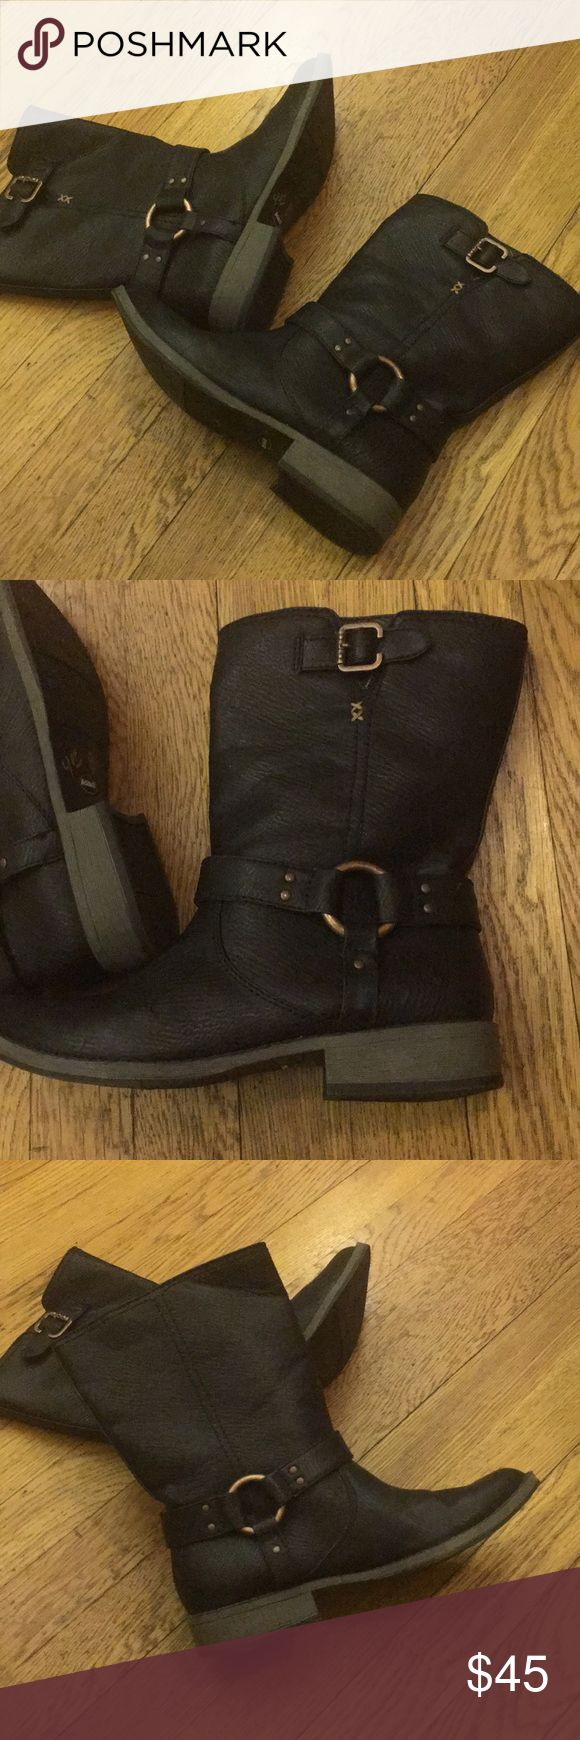 Dr scholls mid calf boots Dr scholl's midcalf Boots in black leather says size 7 but I think it fits size 6/6.5 Dr scholl's Shoes Ankle Boots & Booties